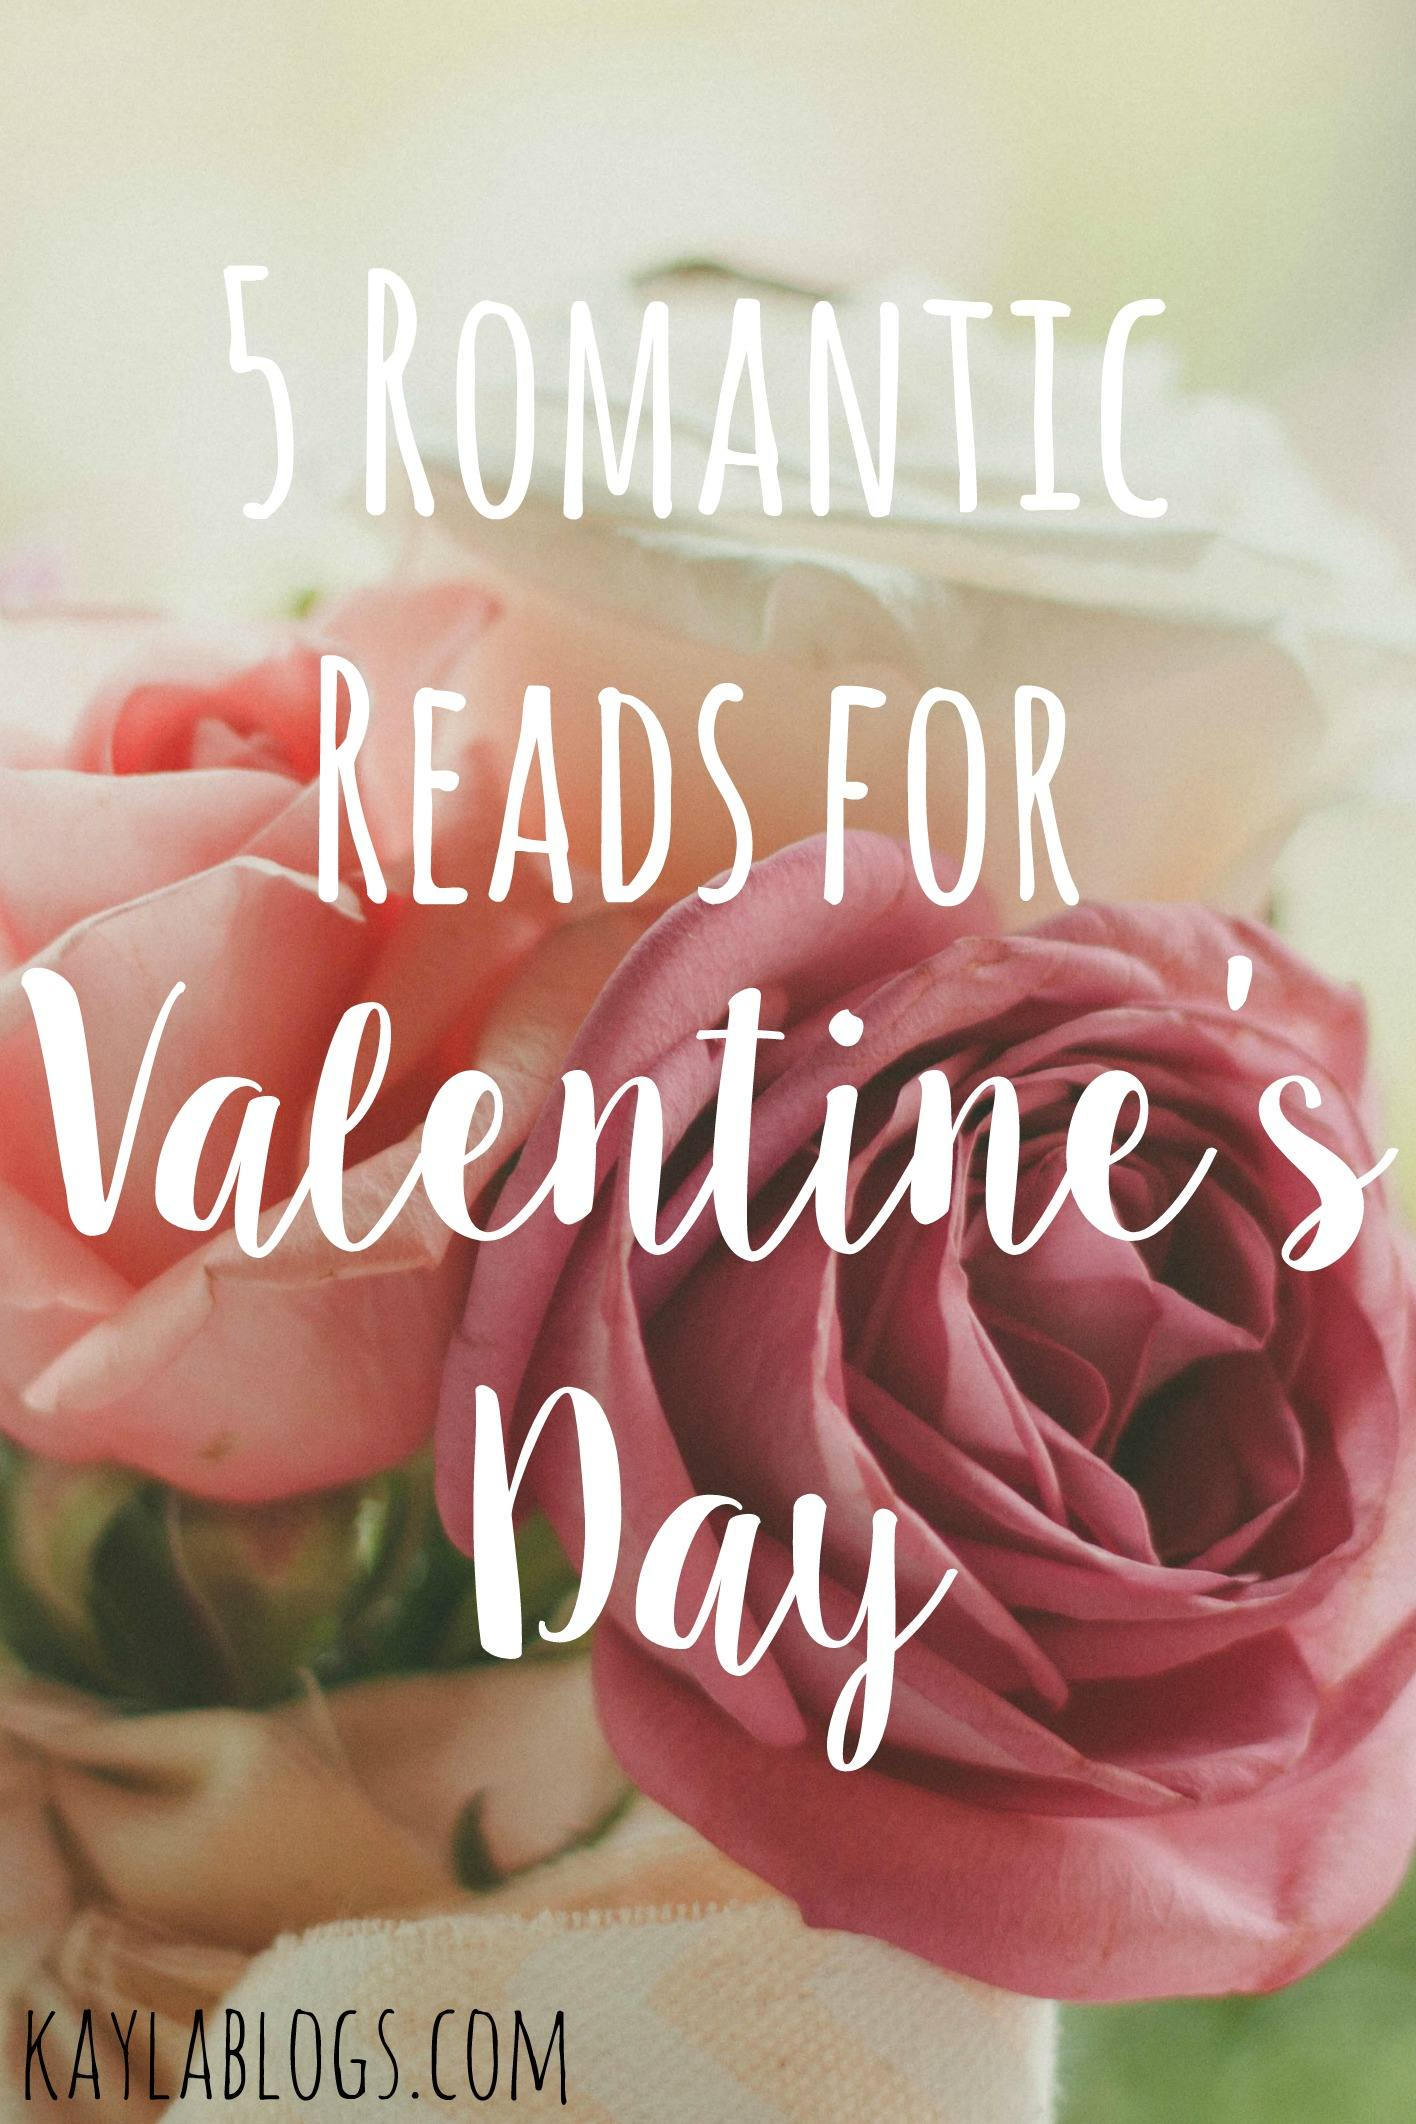 5 Romantic Reads for Valentine's Day